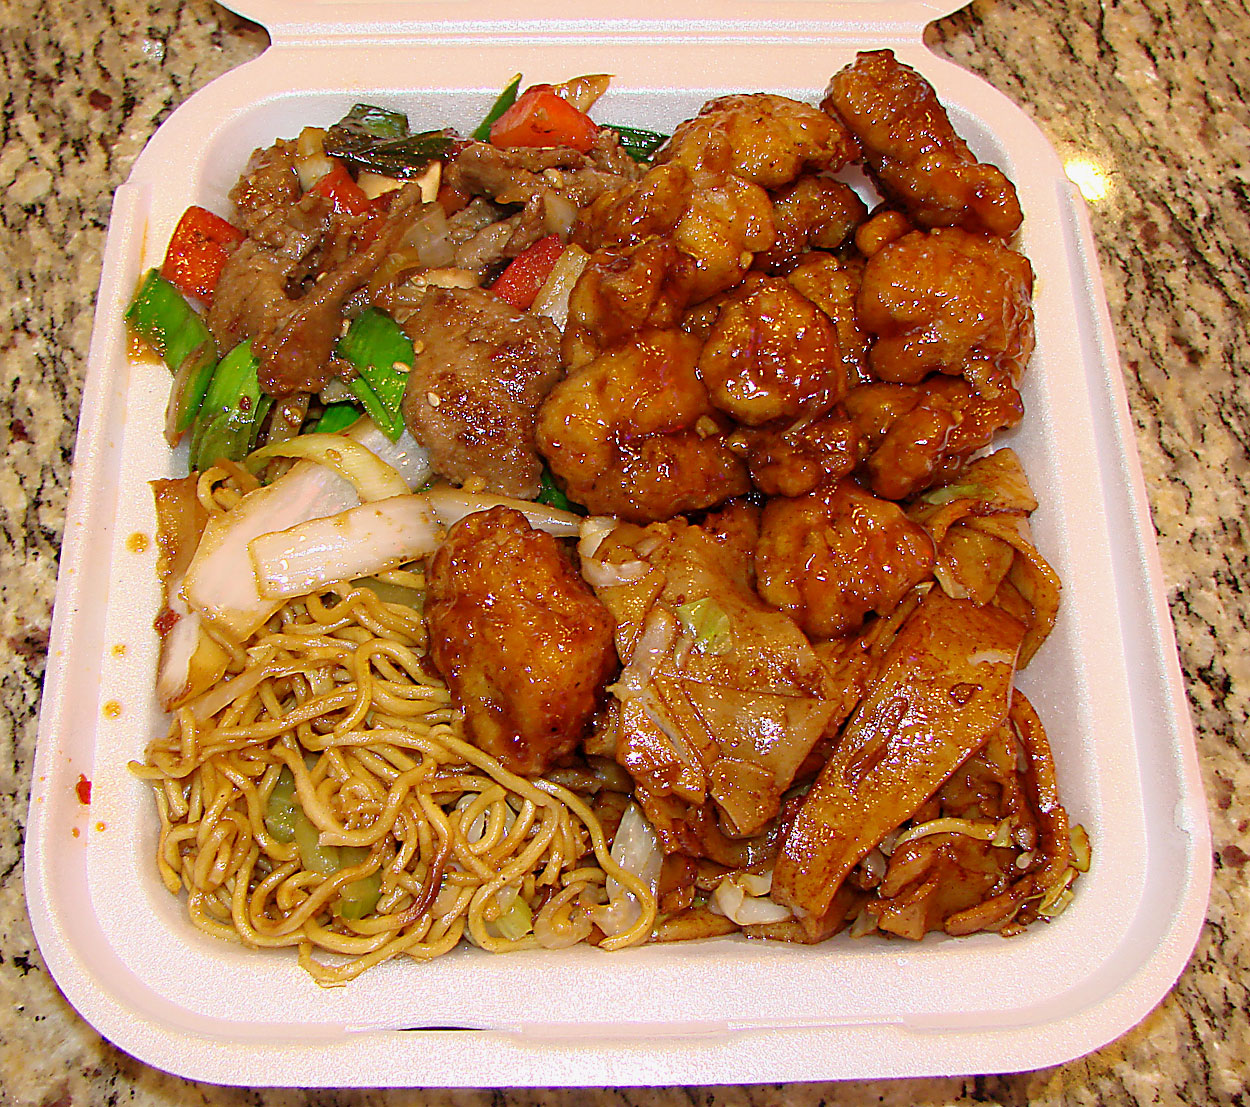 panda express Panda express is a fast casual restaurant chain which serves american chinese cuisinewith approximately 2,000+ locations, it is the largest asian segment restaurant chain in the united states, where it was founded and is mainly located (in addition to other countries and territories in north america and asia) panda express restaurants were traditionally located in shopping mall food courts.